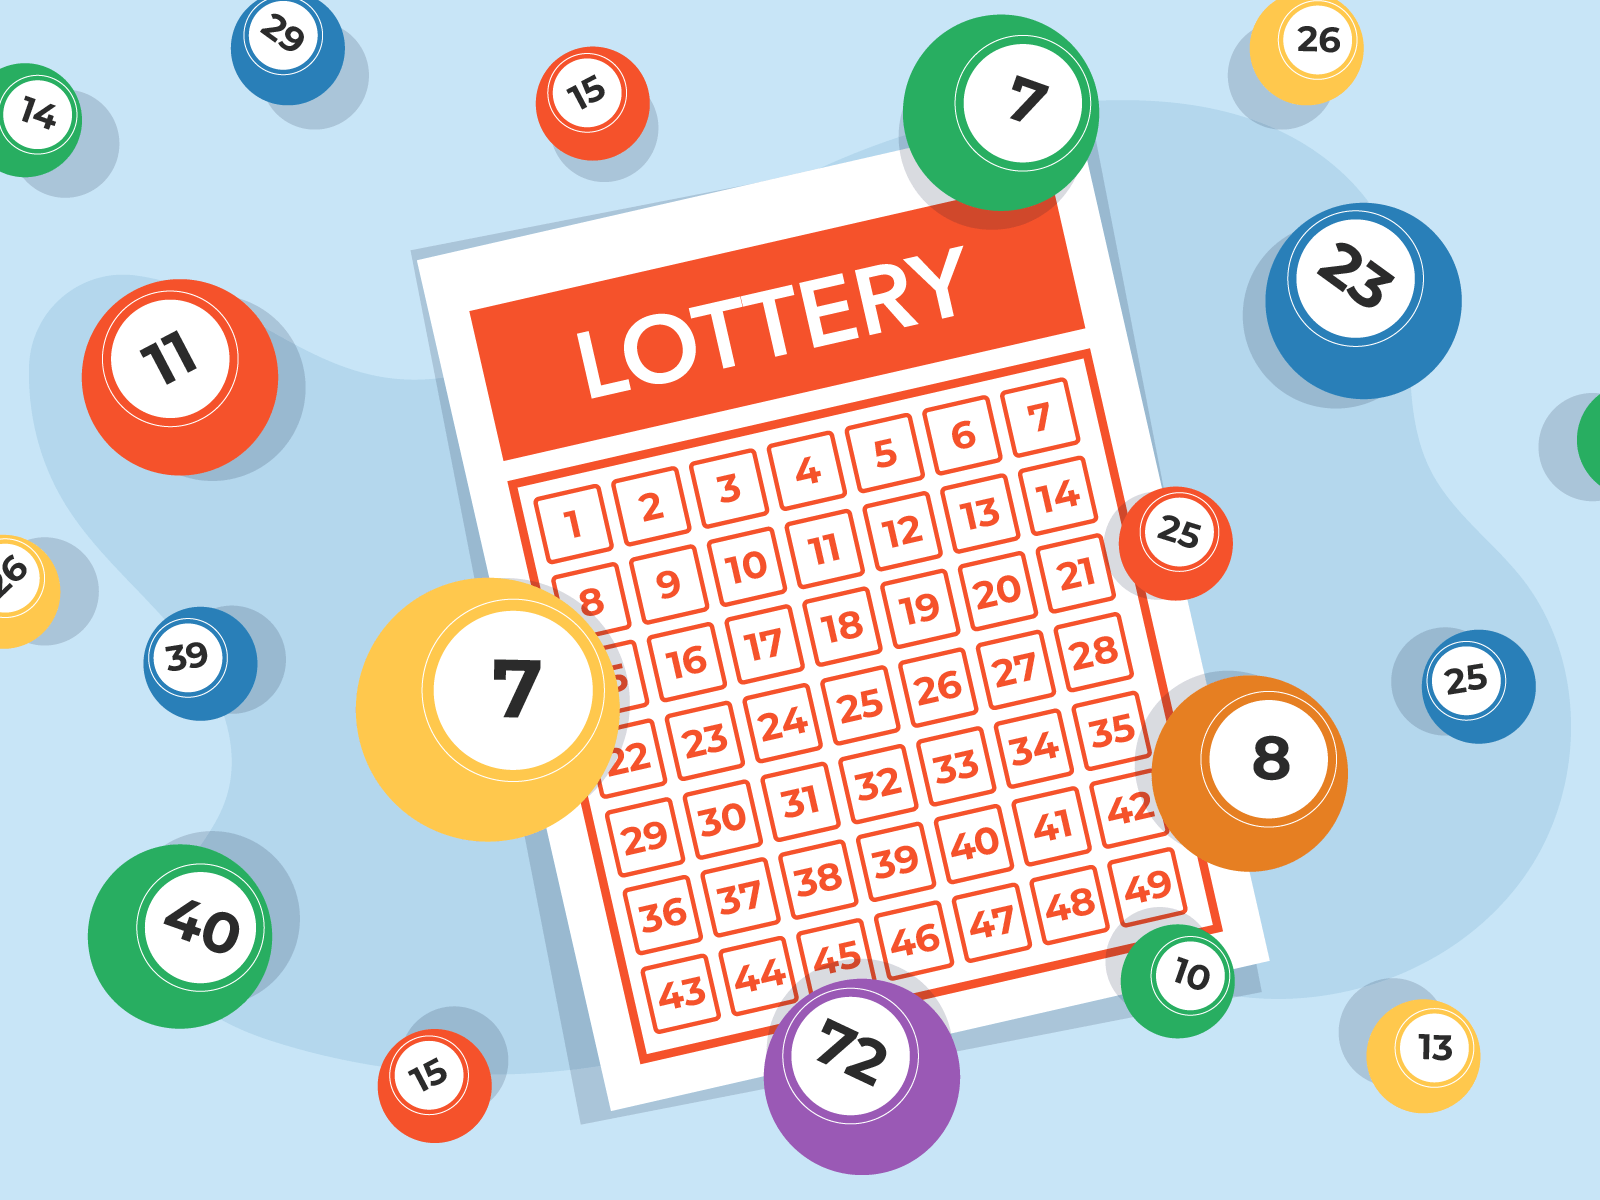 8 Different Ways To Choose Lottery Numbers - Top Tips & Methods